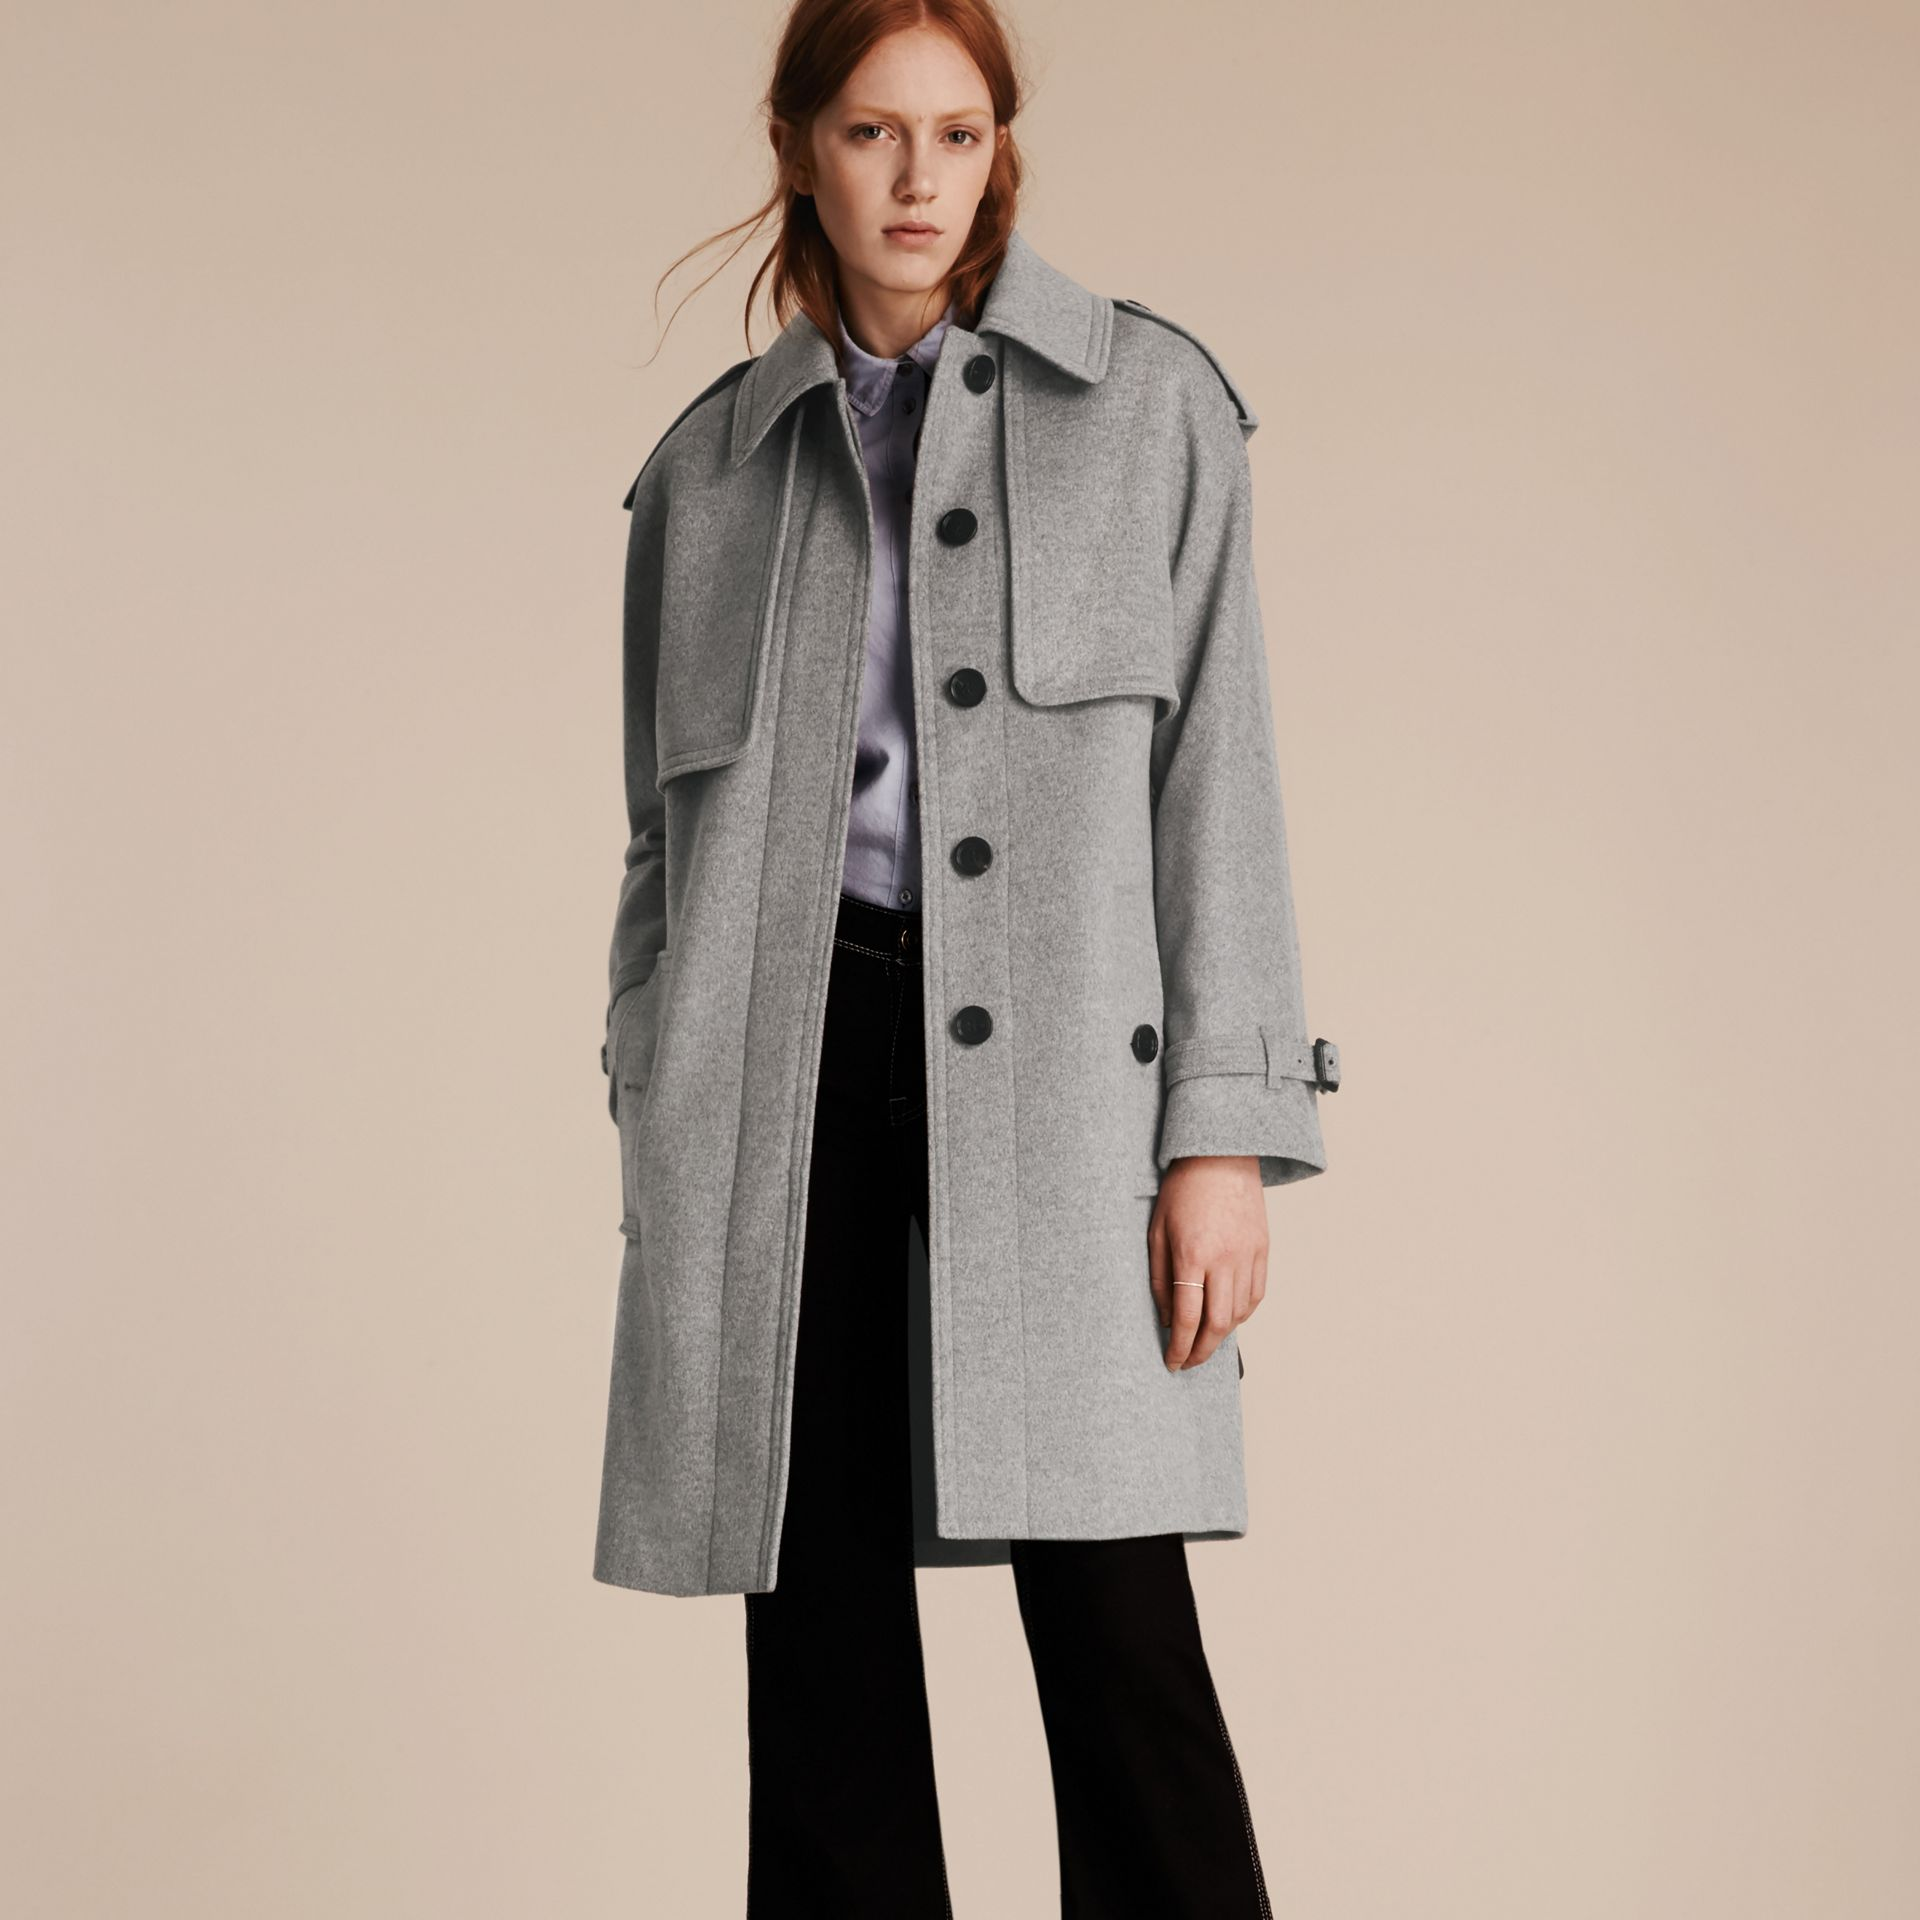 Pale grey melange Wool Cashmere Trench Coat with Oversize Detailing - gallery image 6